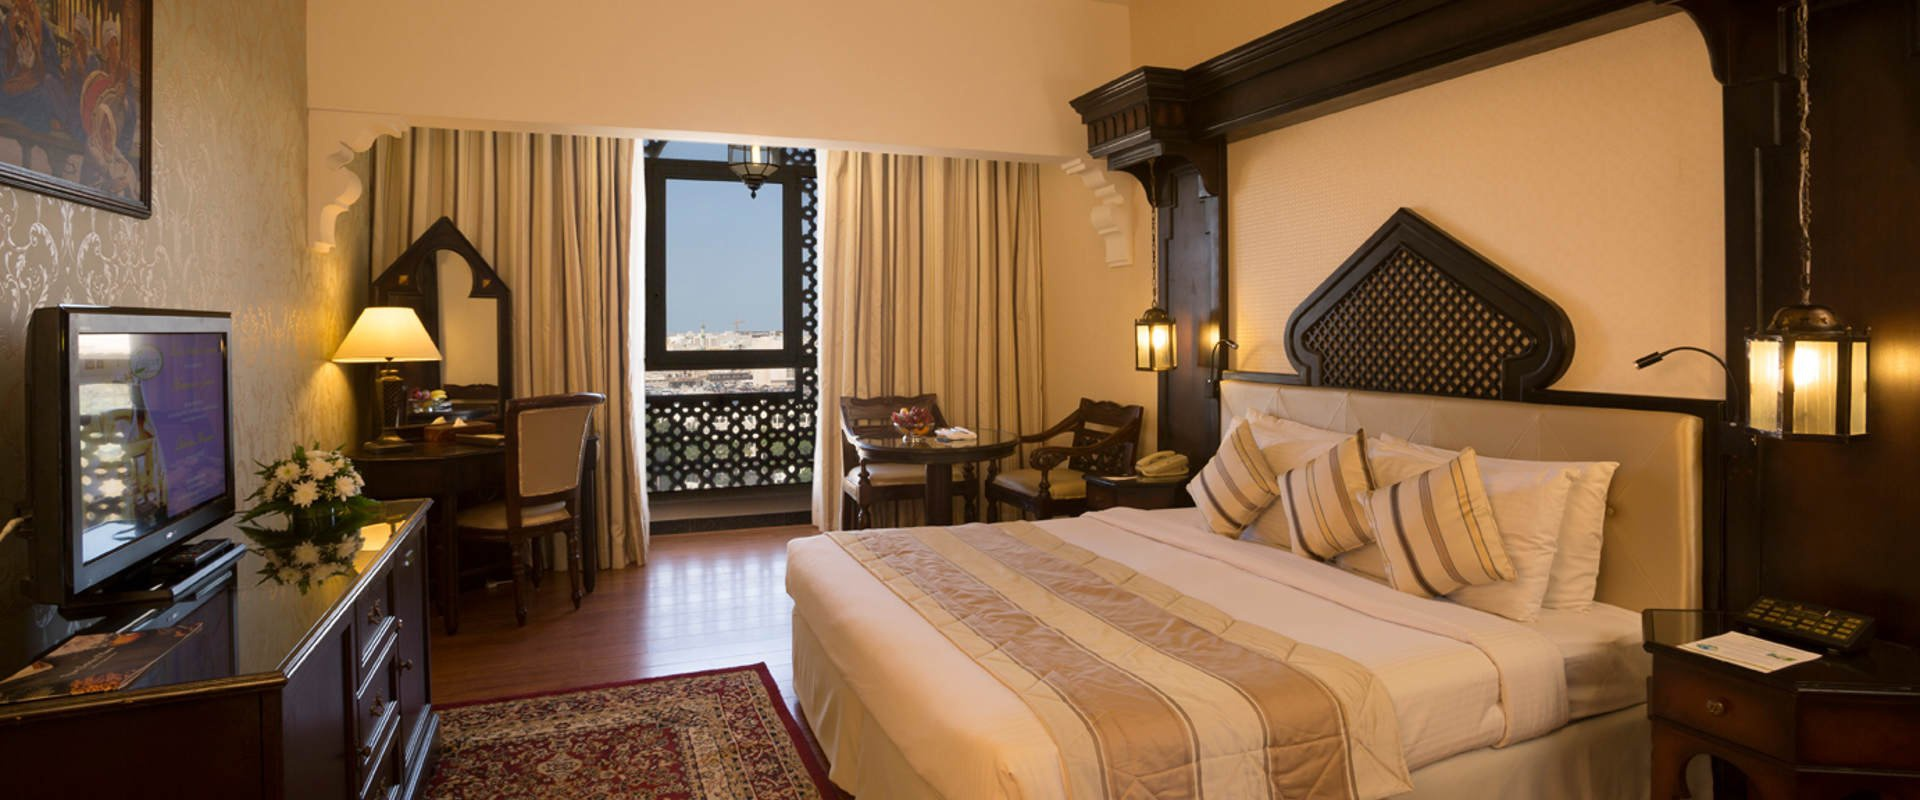 The ideal place to share with the family arabian courtyard hotel & spa bur dubai